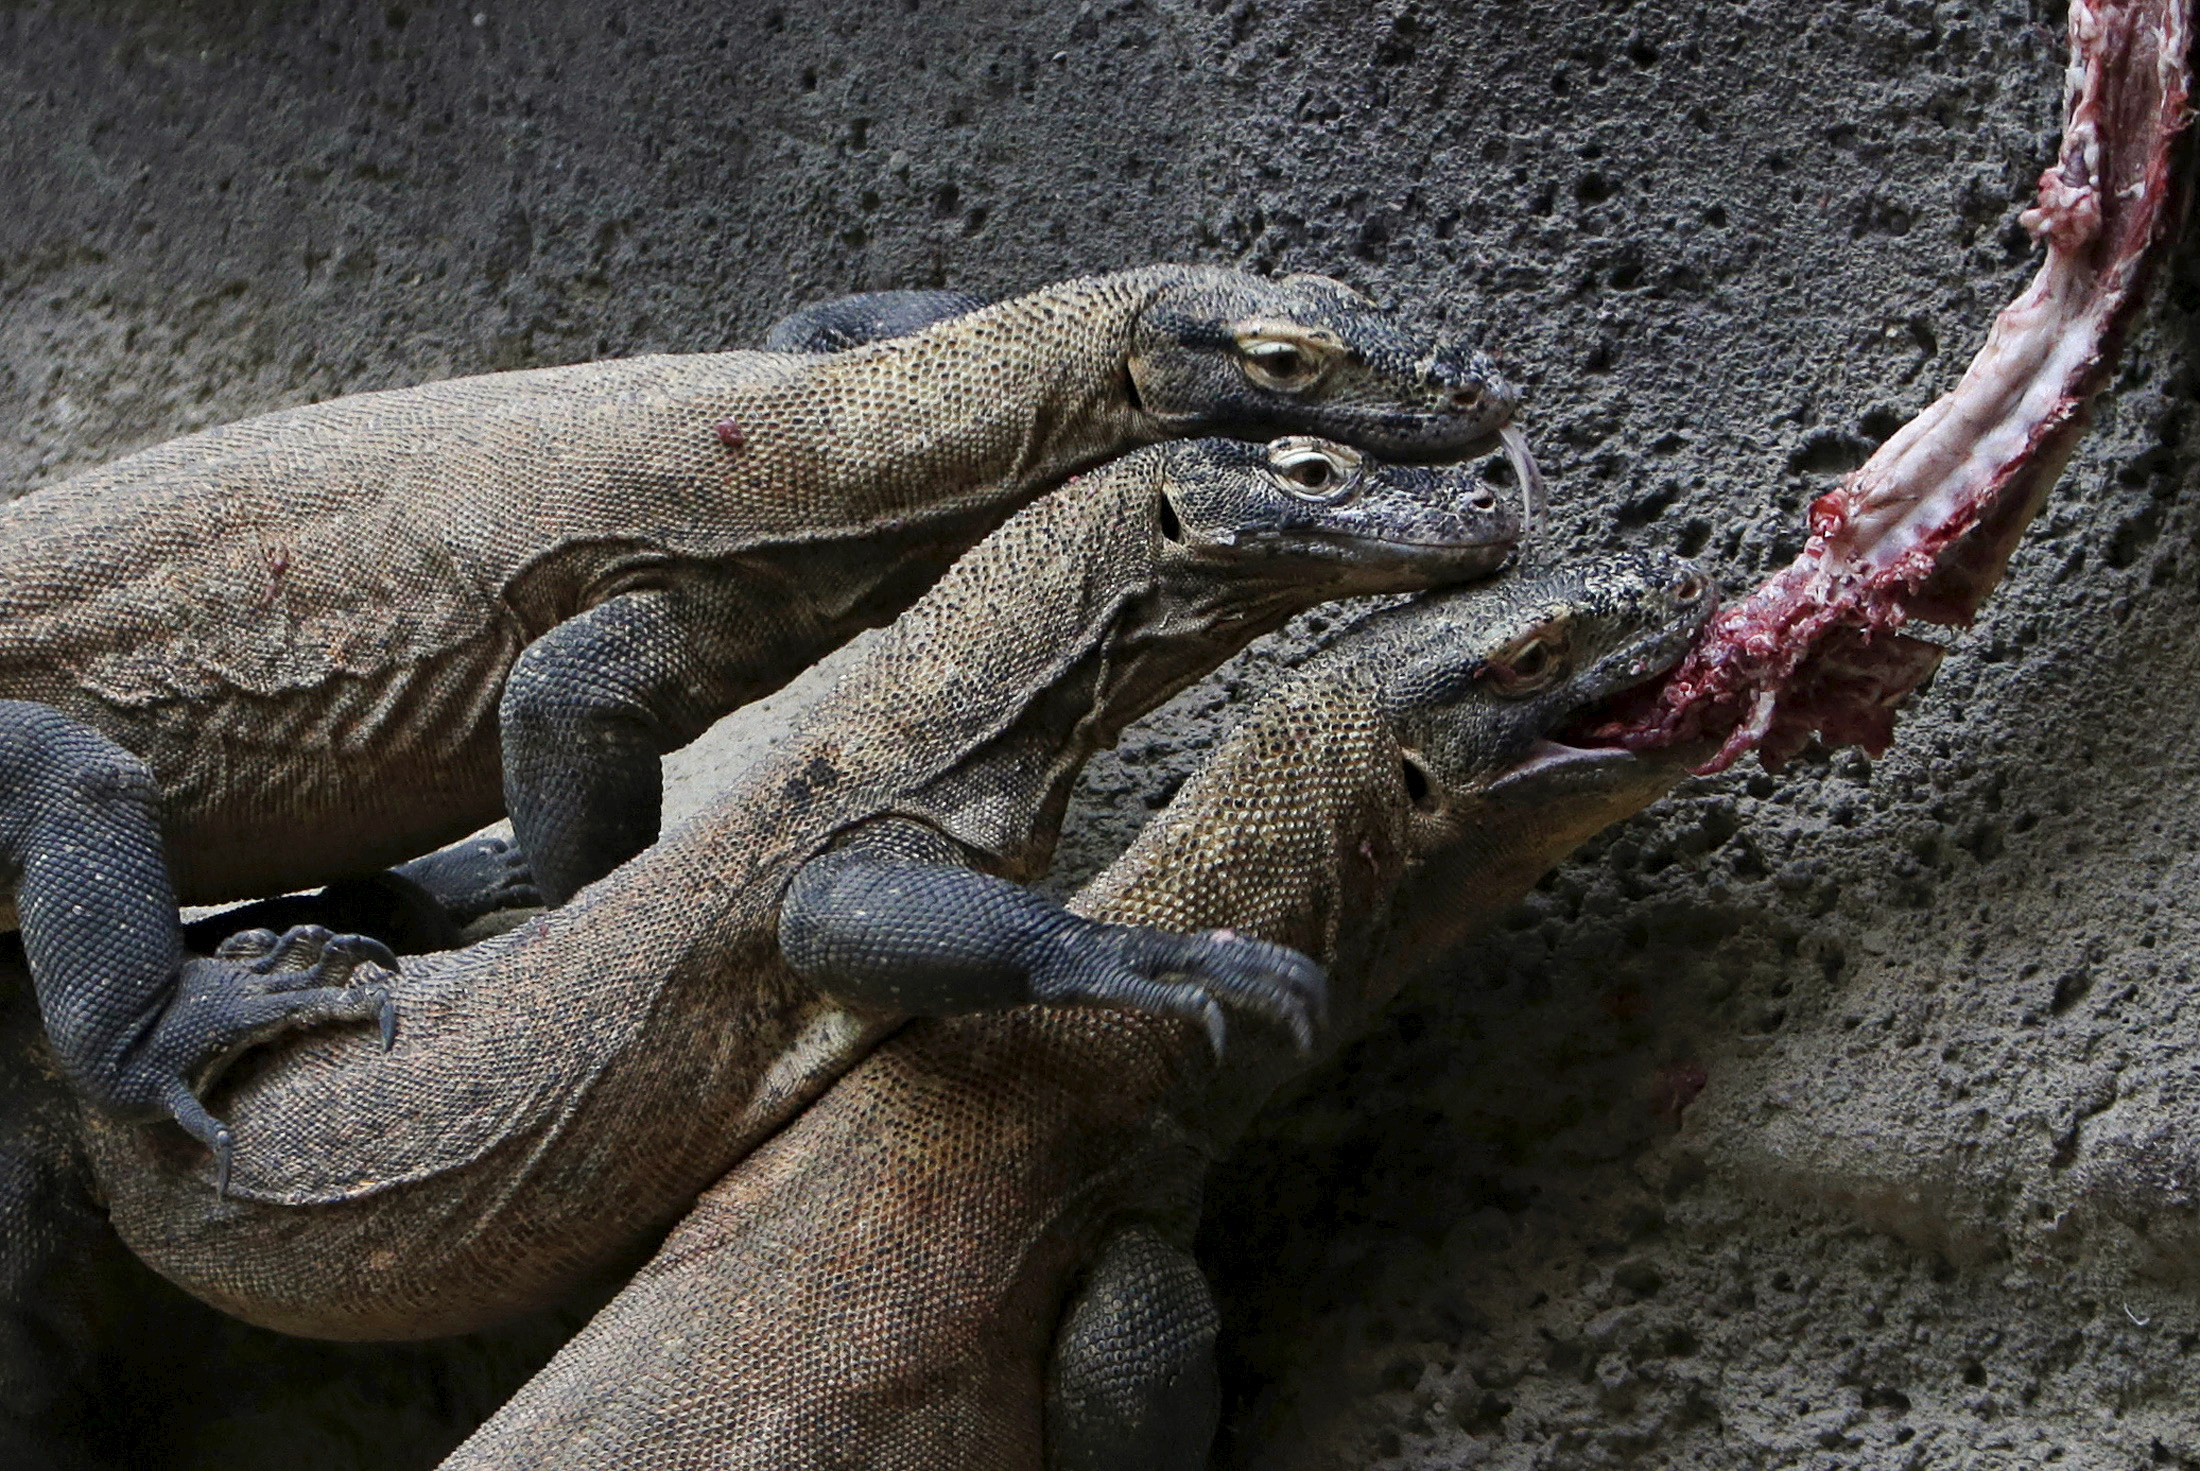 Слайд 66 из 67: Komodo dragons eat meat inside their enclosure at Prague Zoo, Czech Republic, January 16, 2016.